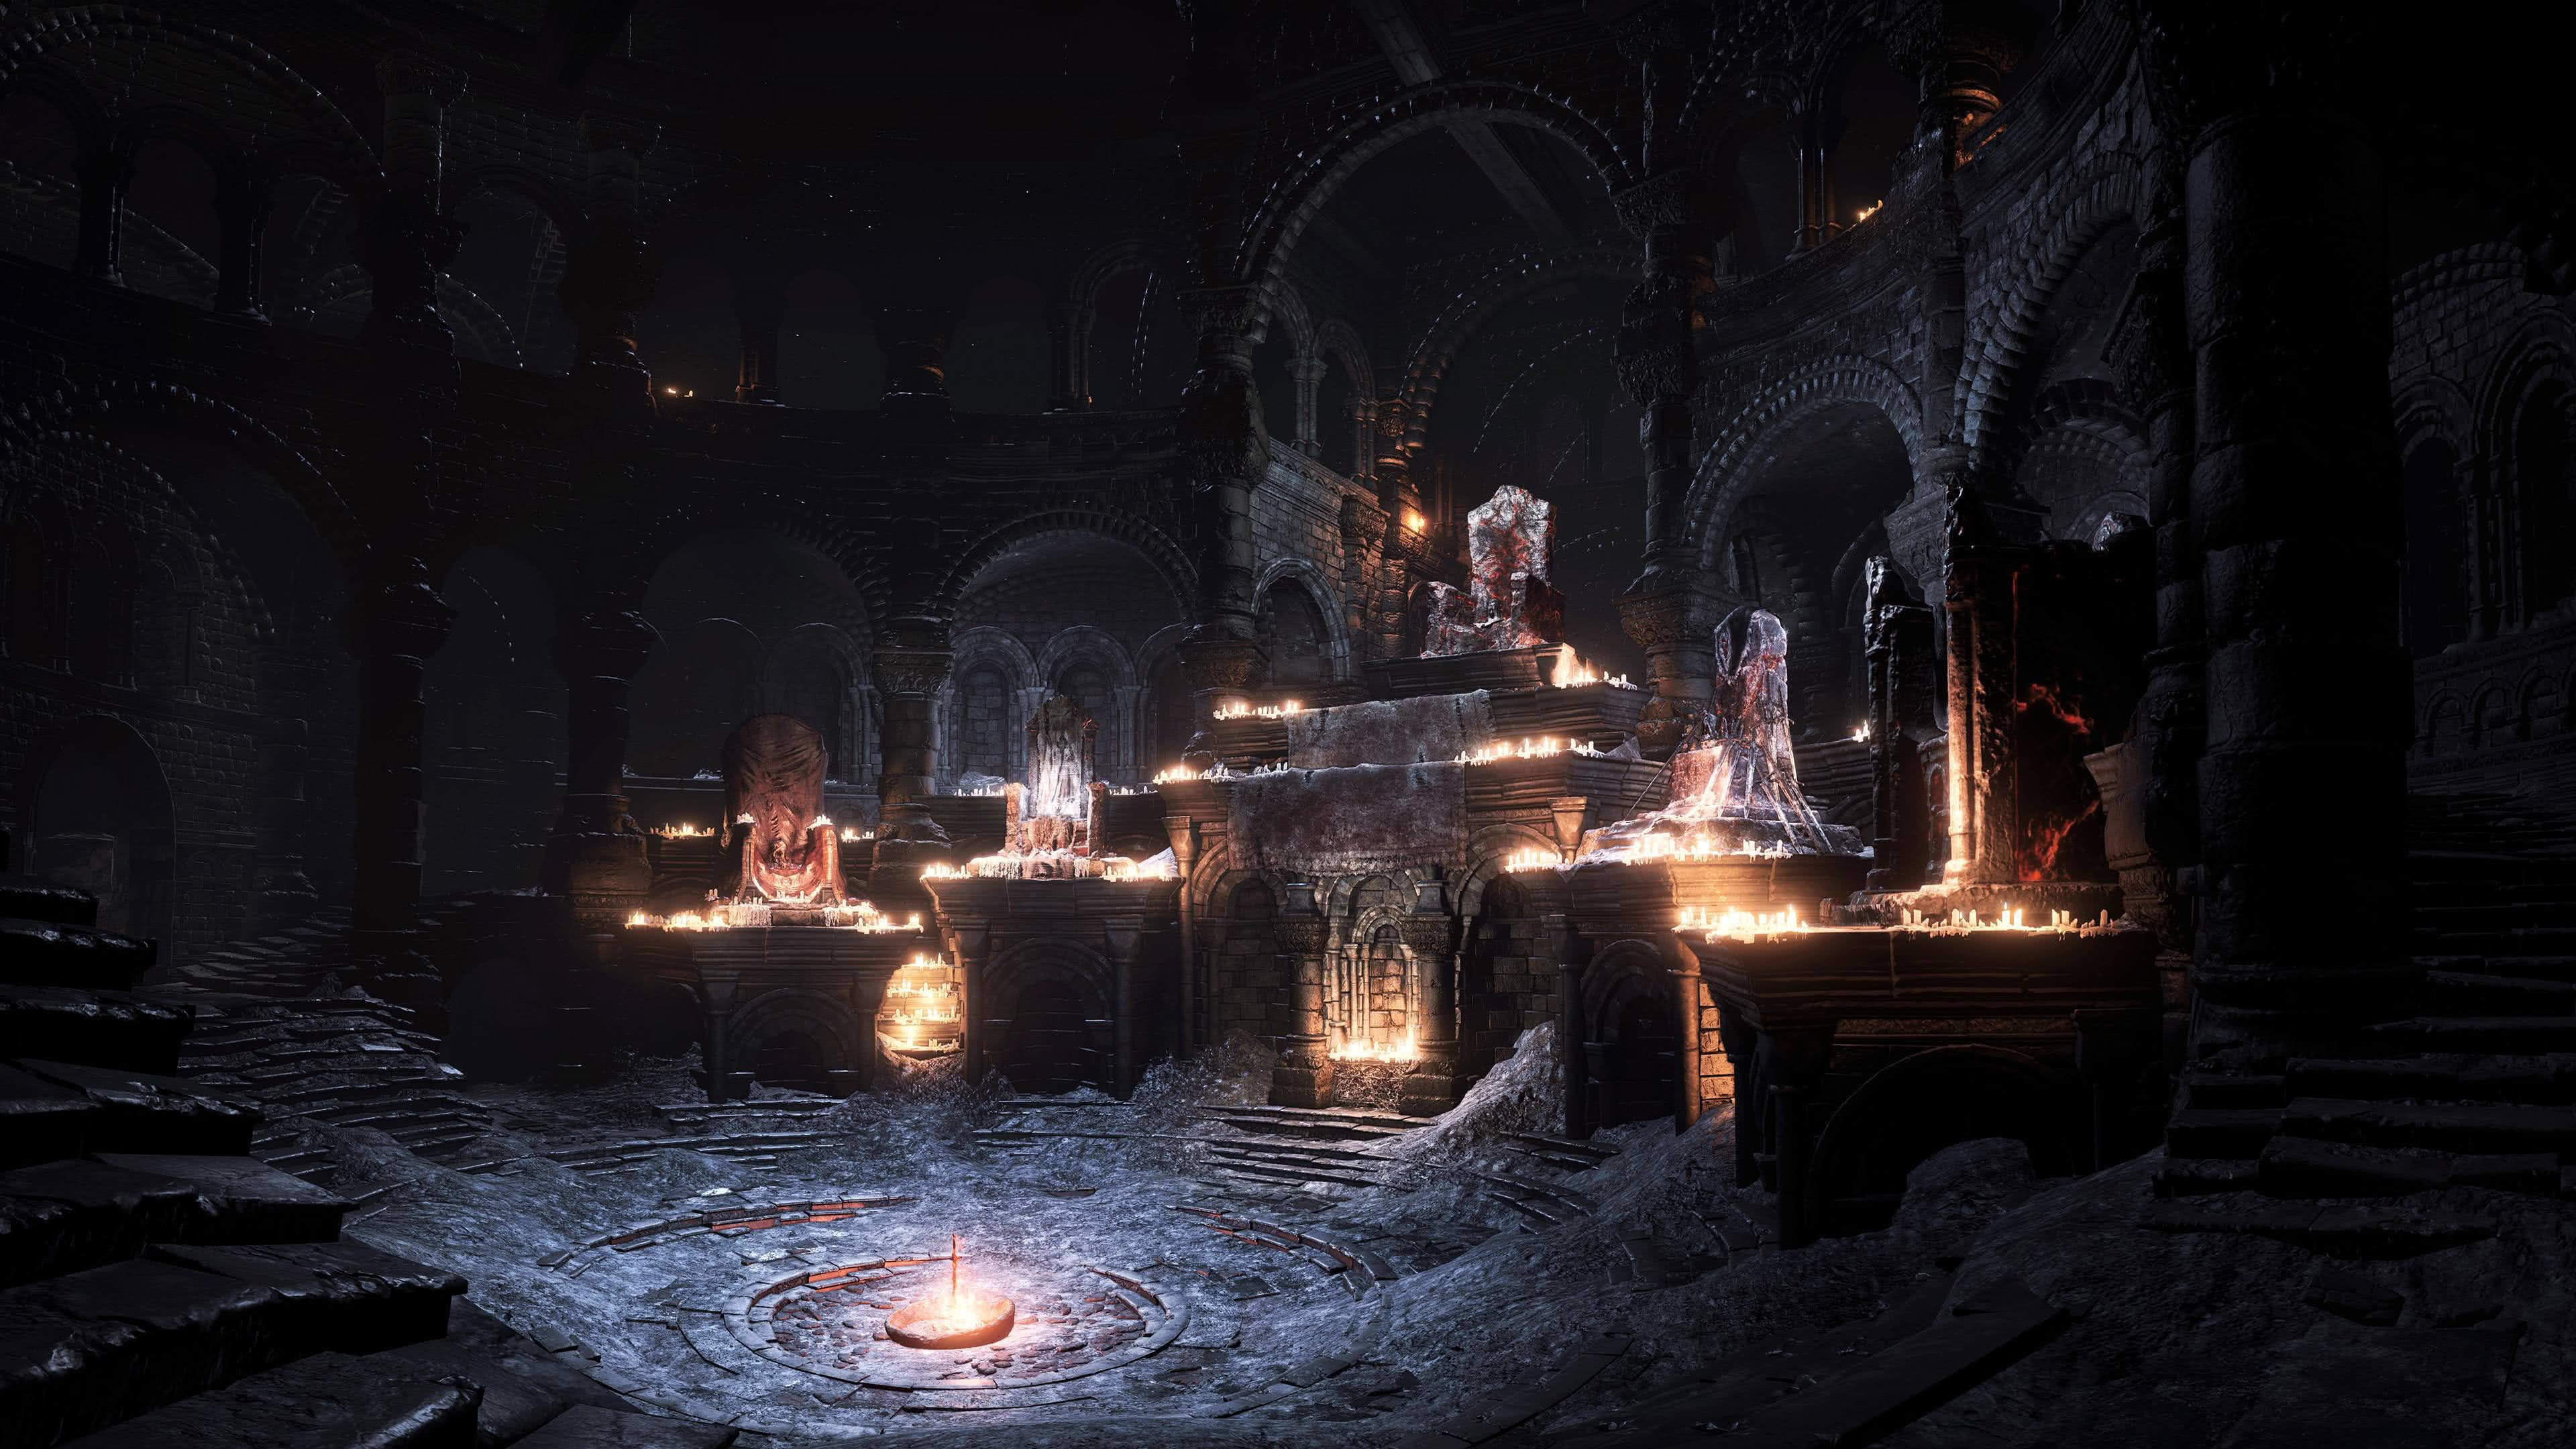 Res 3840x2160 Dark Souls 3 Firelink Shrine Uhd 4k Wallpaper In 2020 Dark Souls Wallpaper Dark Souls Dark Wallpaper